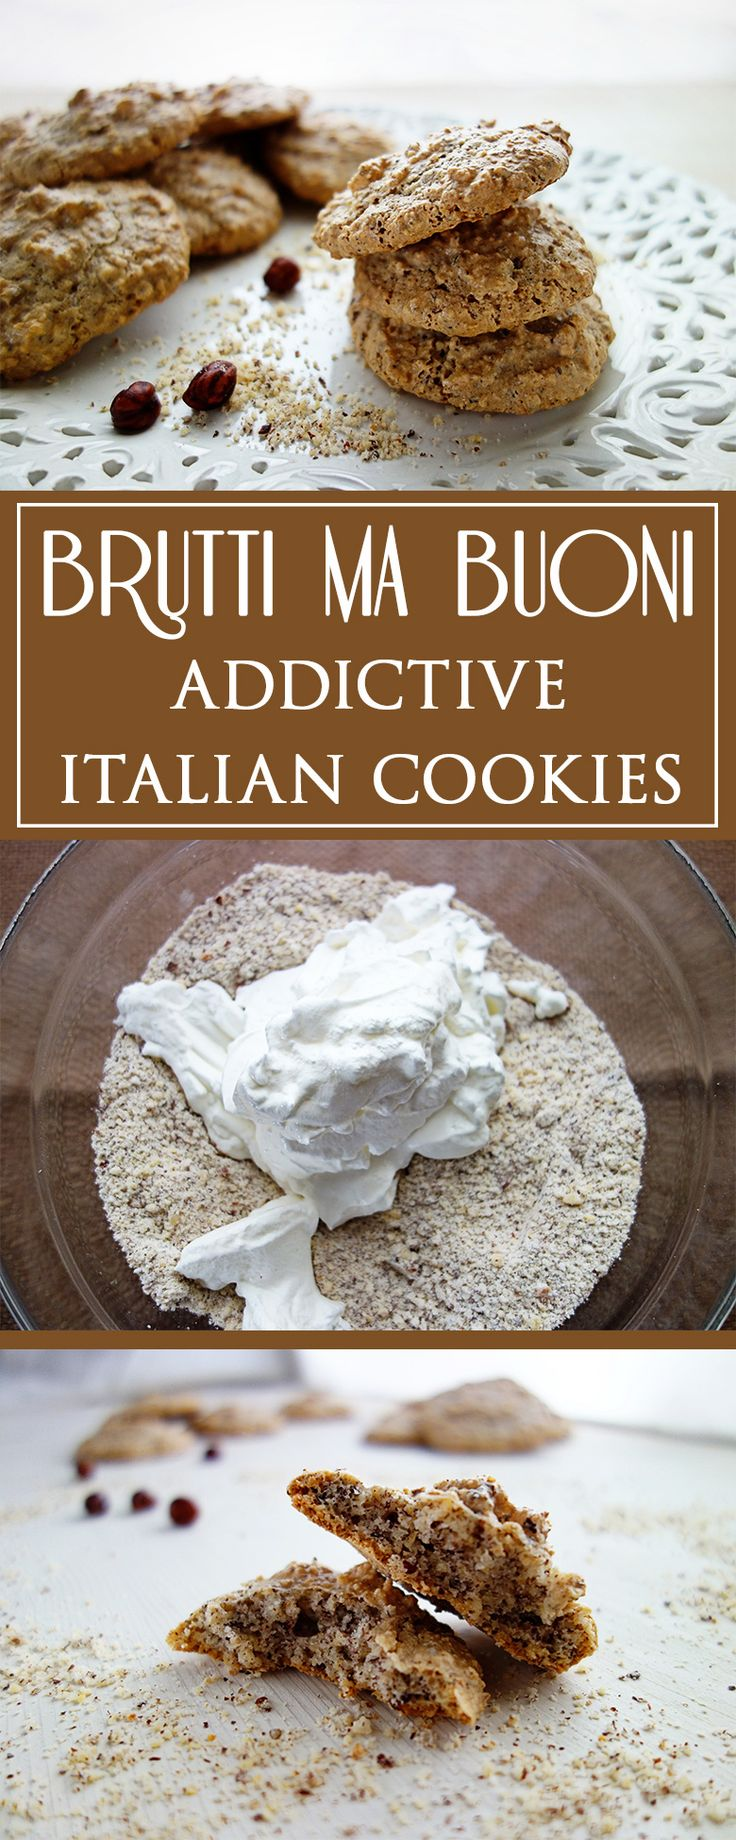 Brutti ma Buoni - addictive italian cookies - here you can find the simple, incredibly delicious recipe for this little sin made in Italy! ❤️ | cucina-con-amore.de